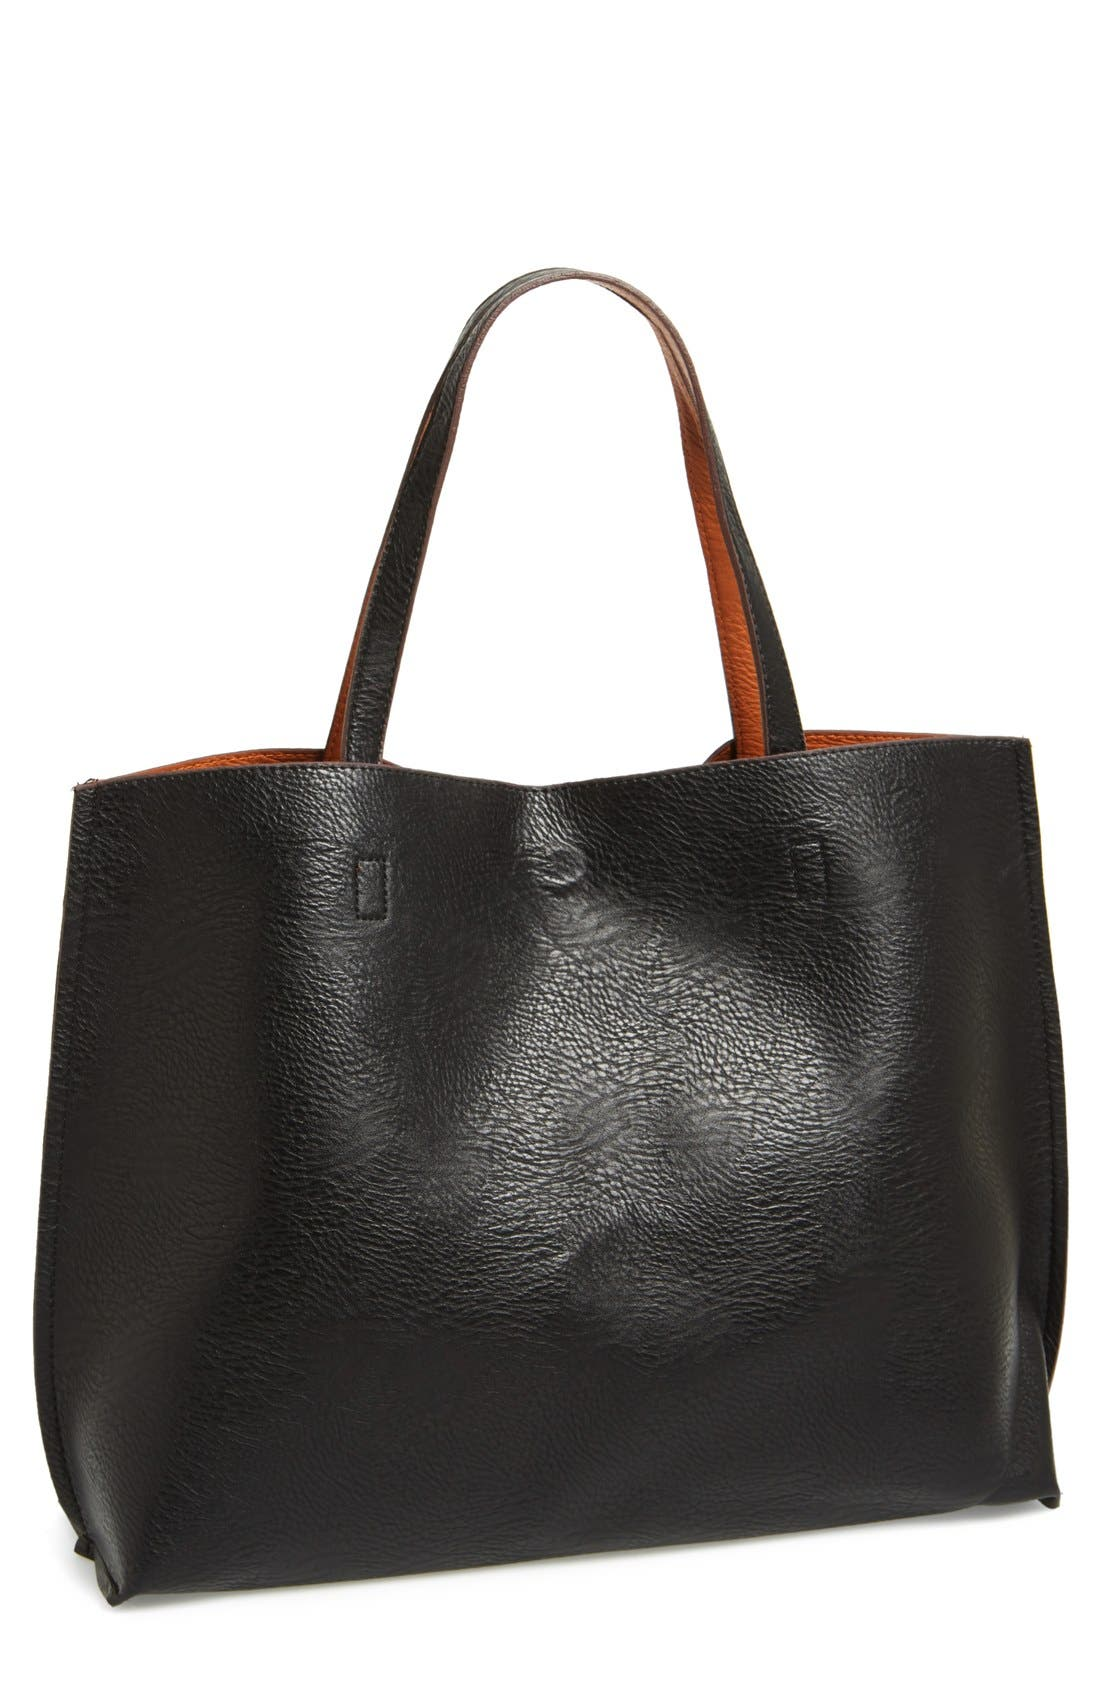 Reversible Faux Leather Tote & Wristlet,                             Alternate thumbnail 6, color,                             BLACK/ COGNAC